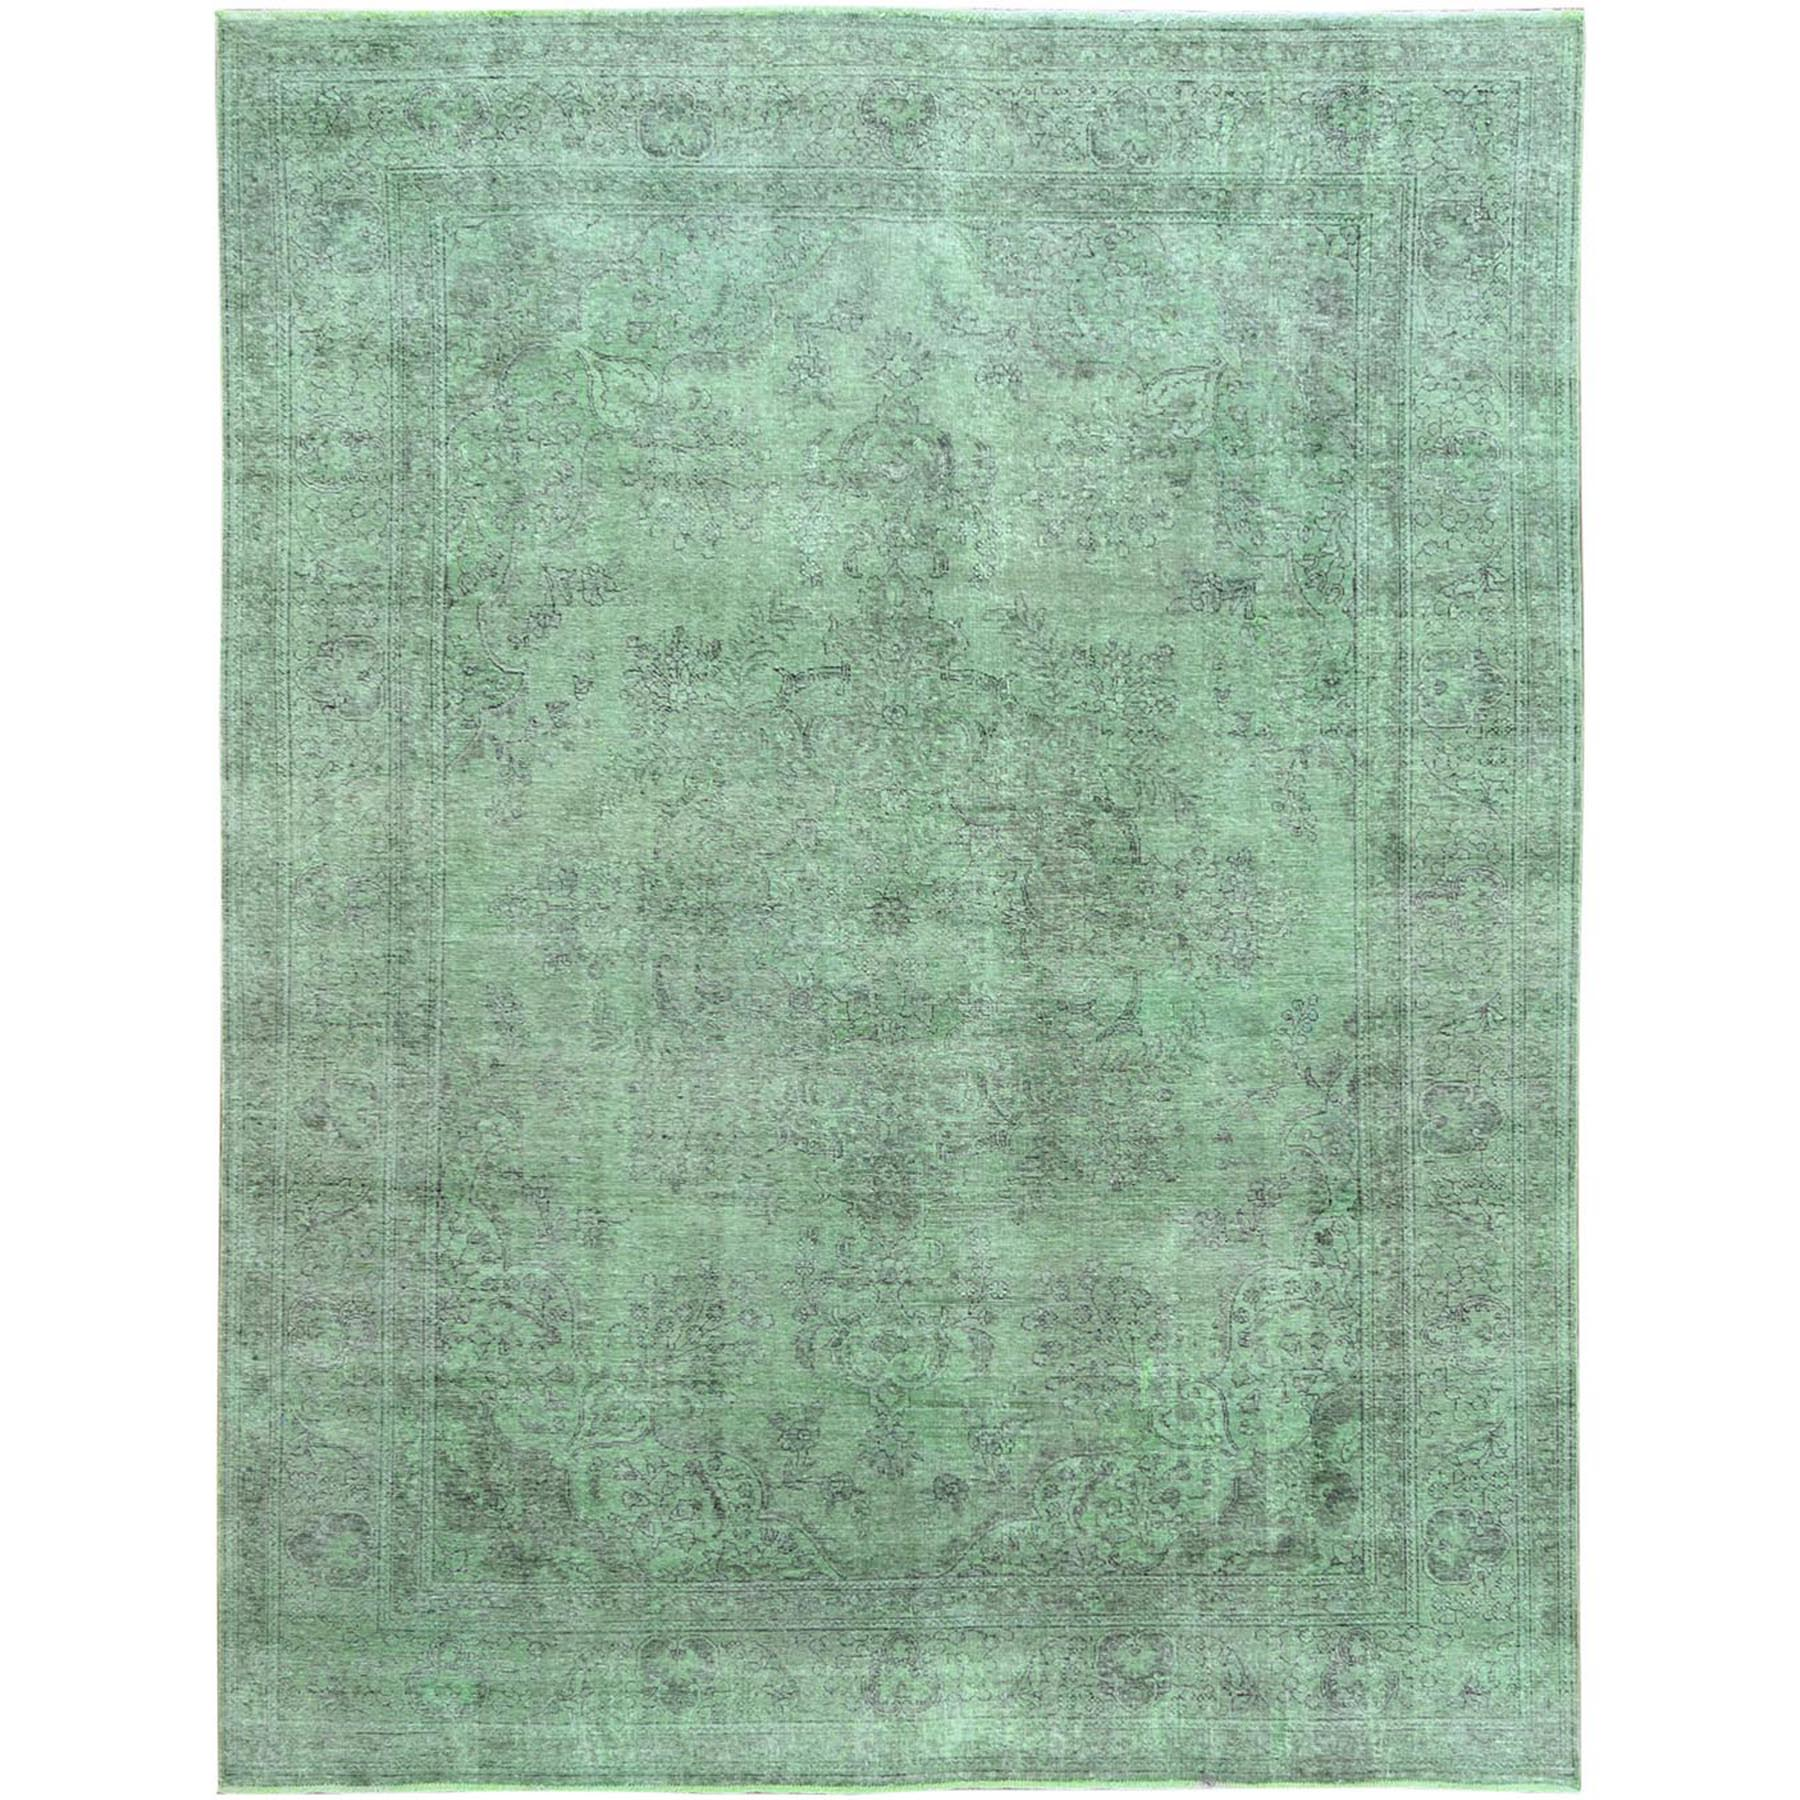 Transitional Collection Hand Knotted Green Rug No: 1115400